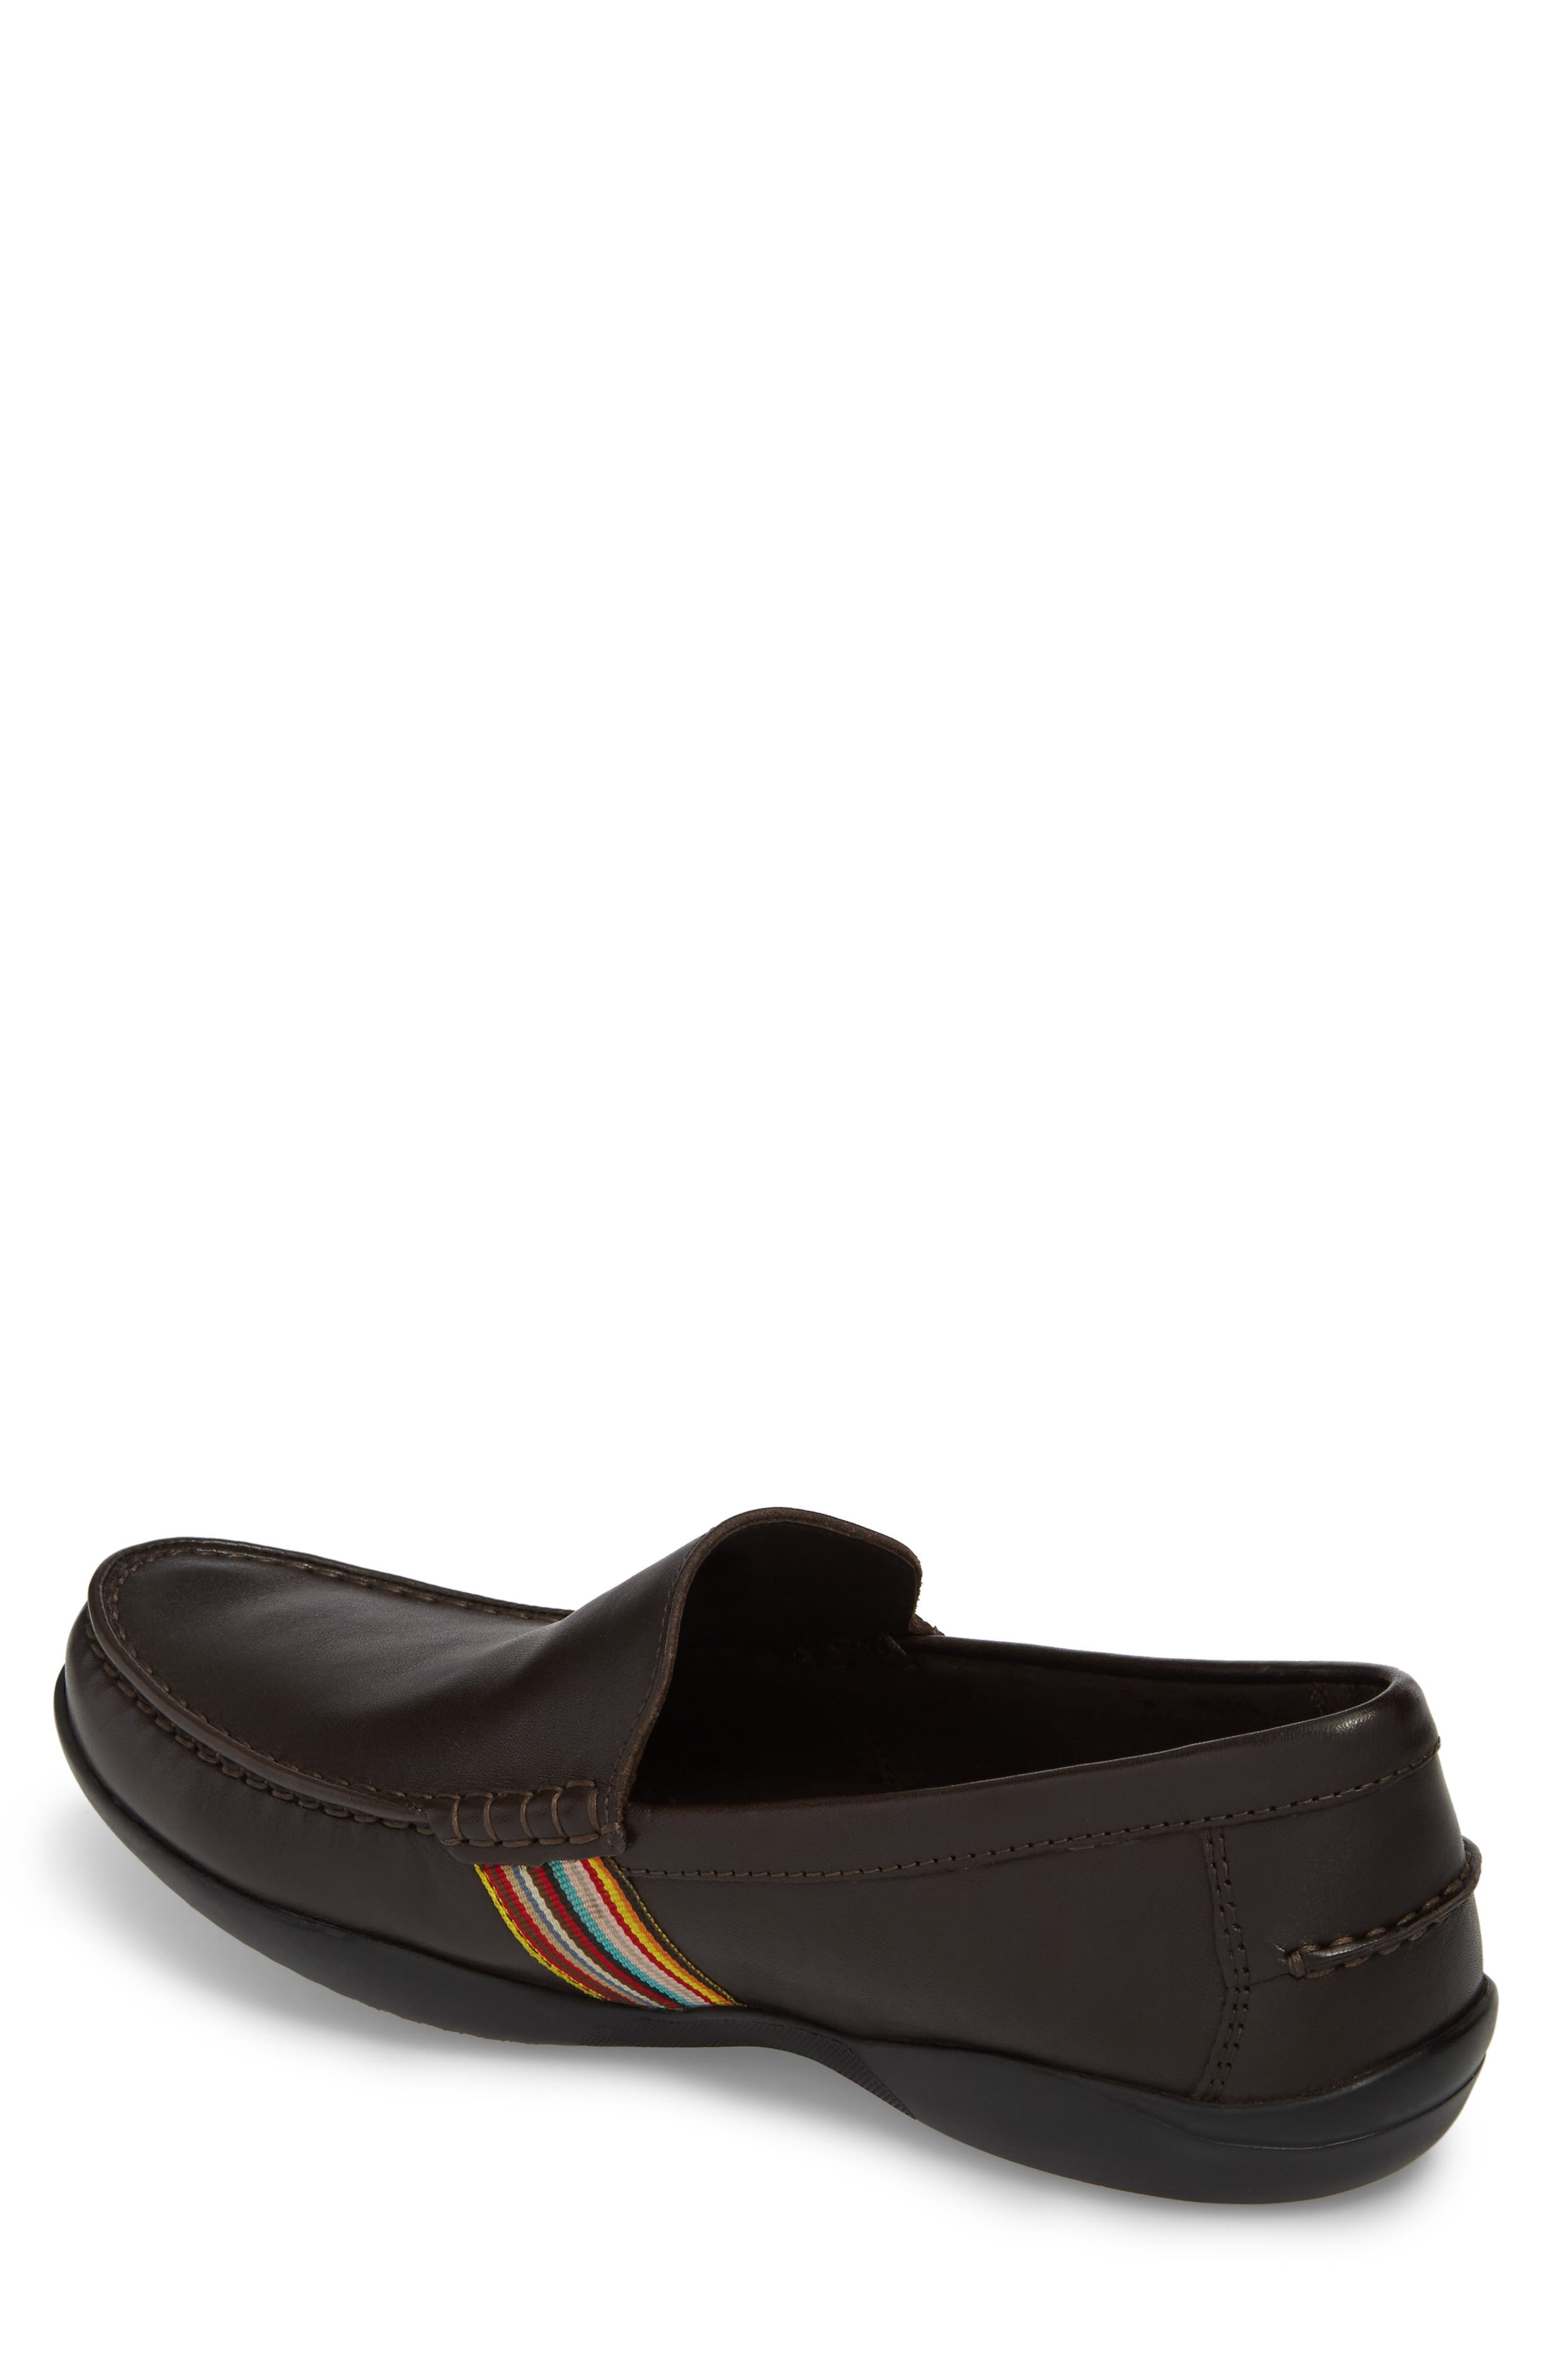 Idris Banded Loafer,                             Alternate thumbnail 2, color,                             Dark Brown Leather